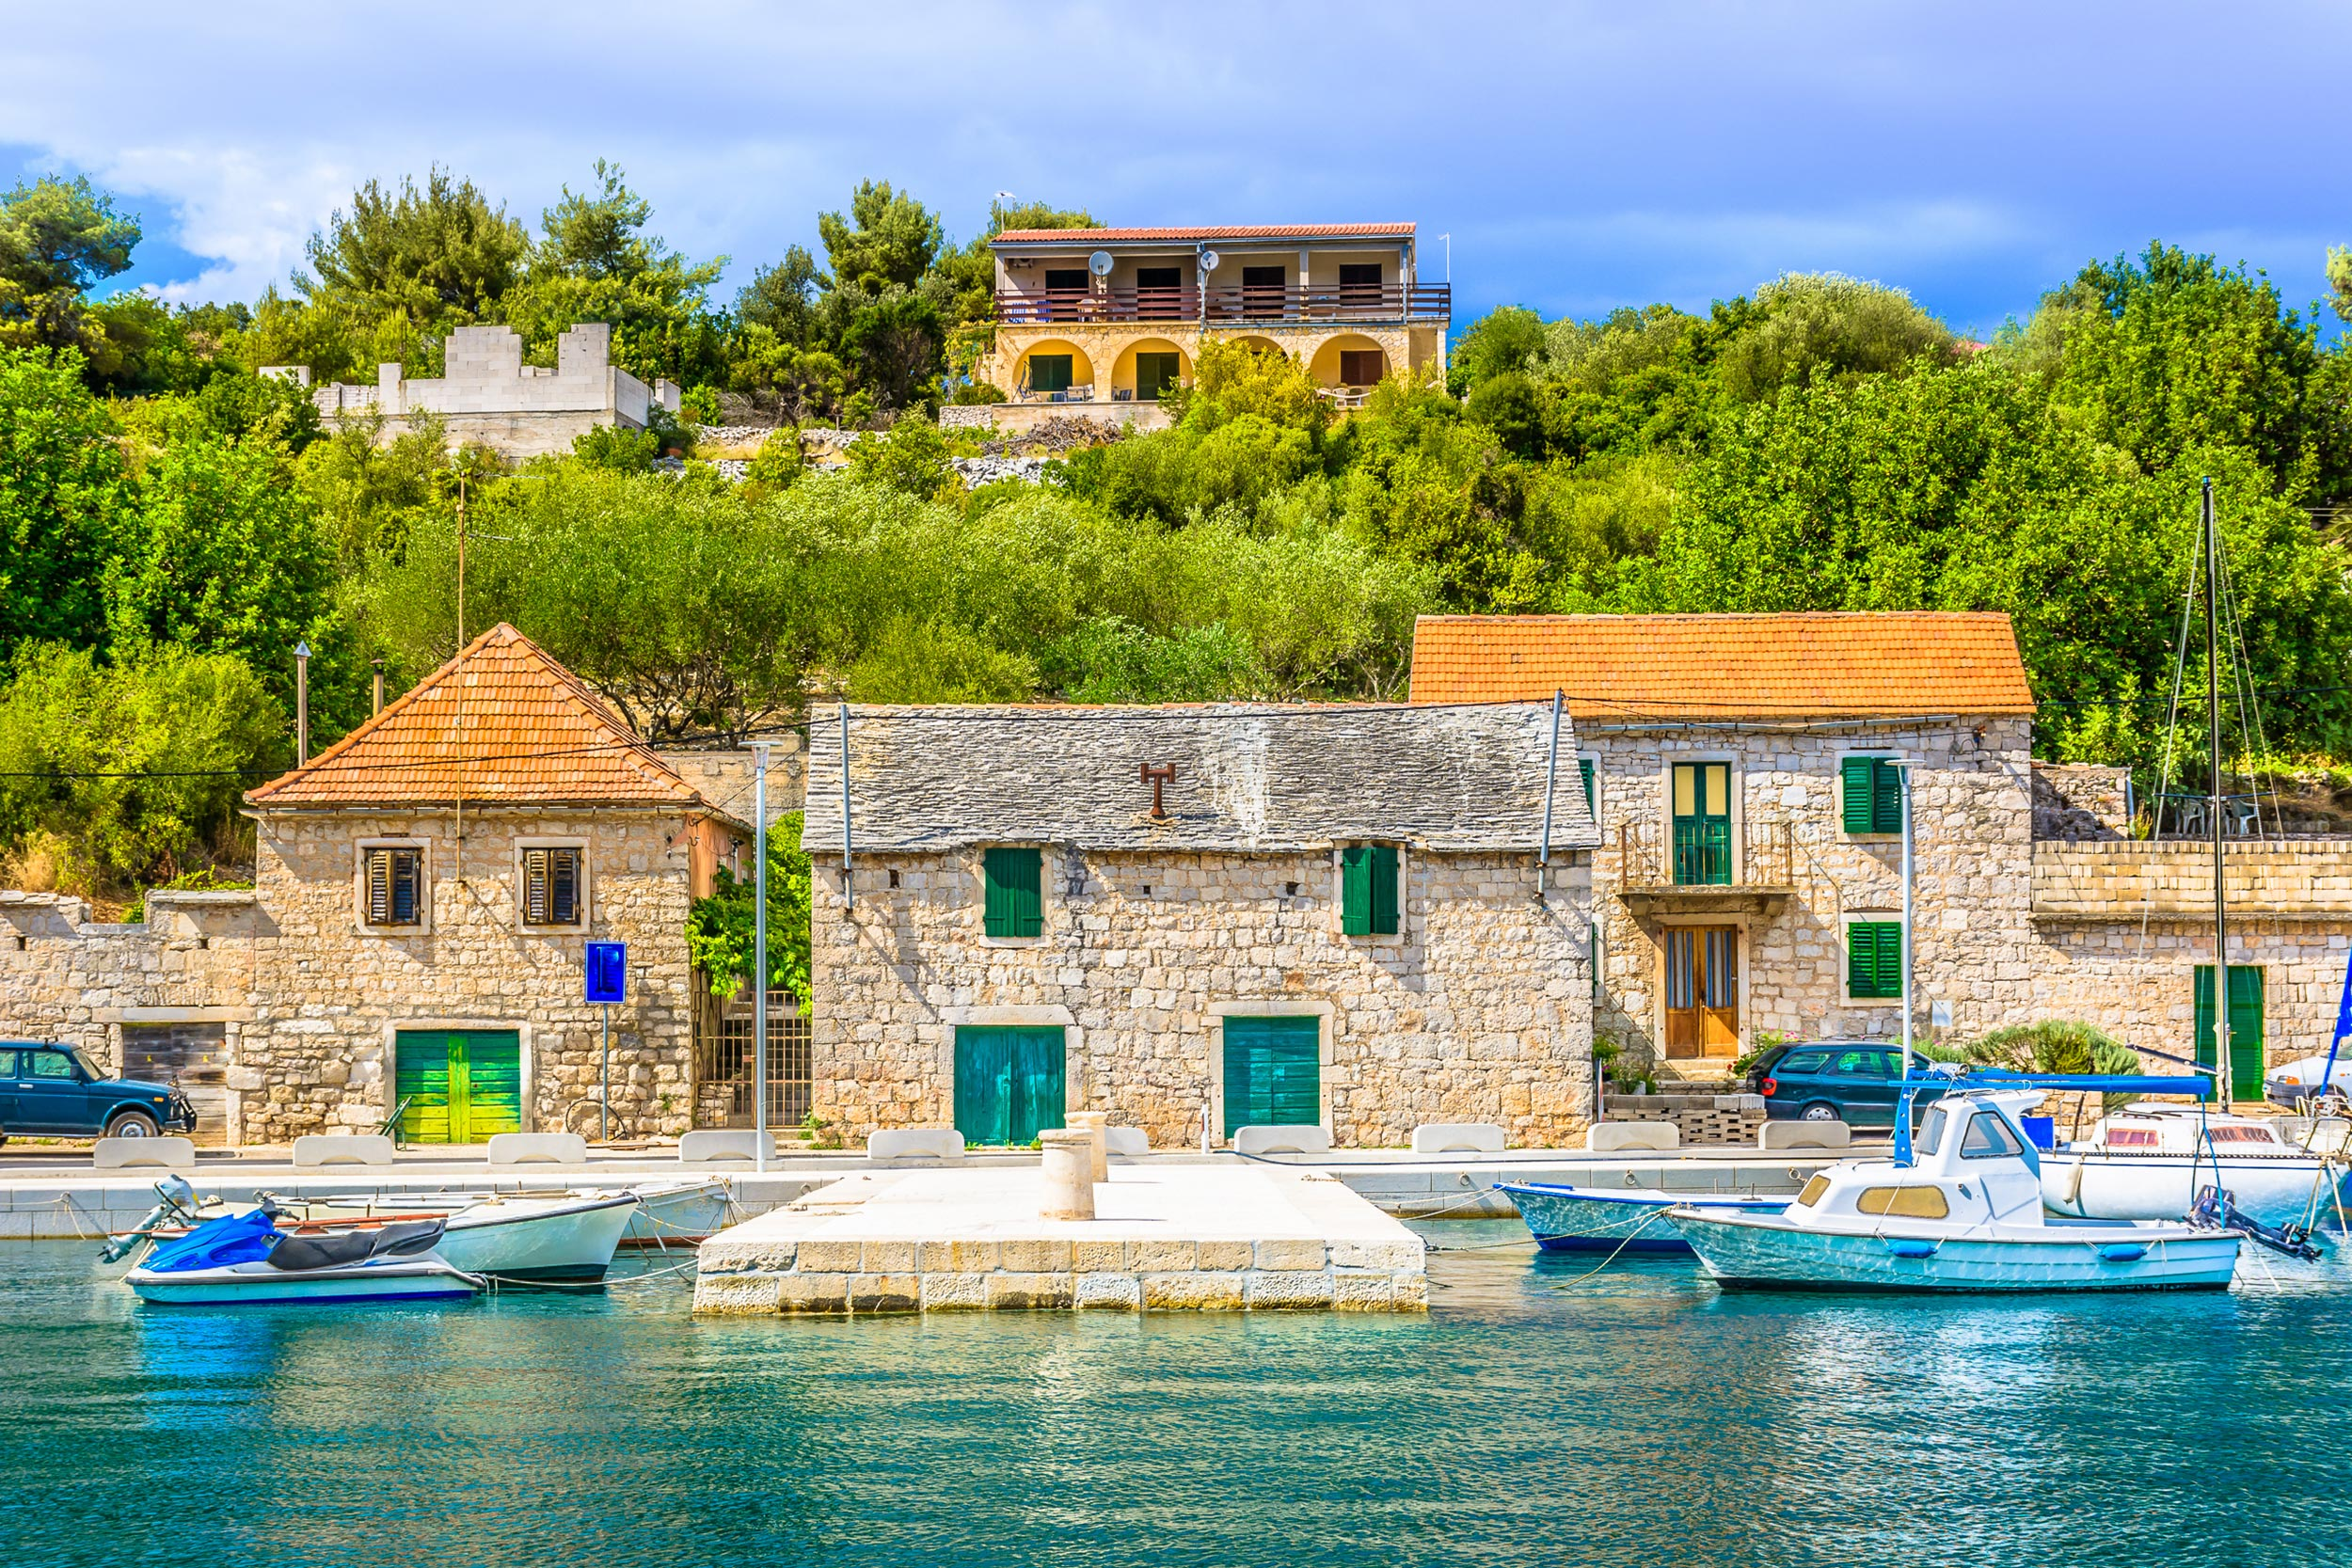 Old stone houses along the coast and small old boats